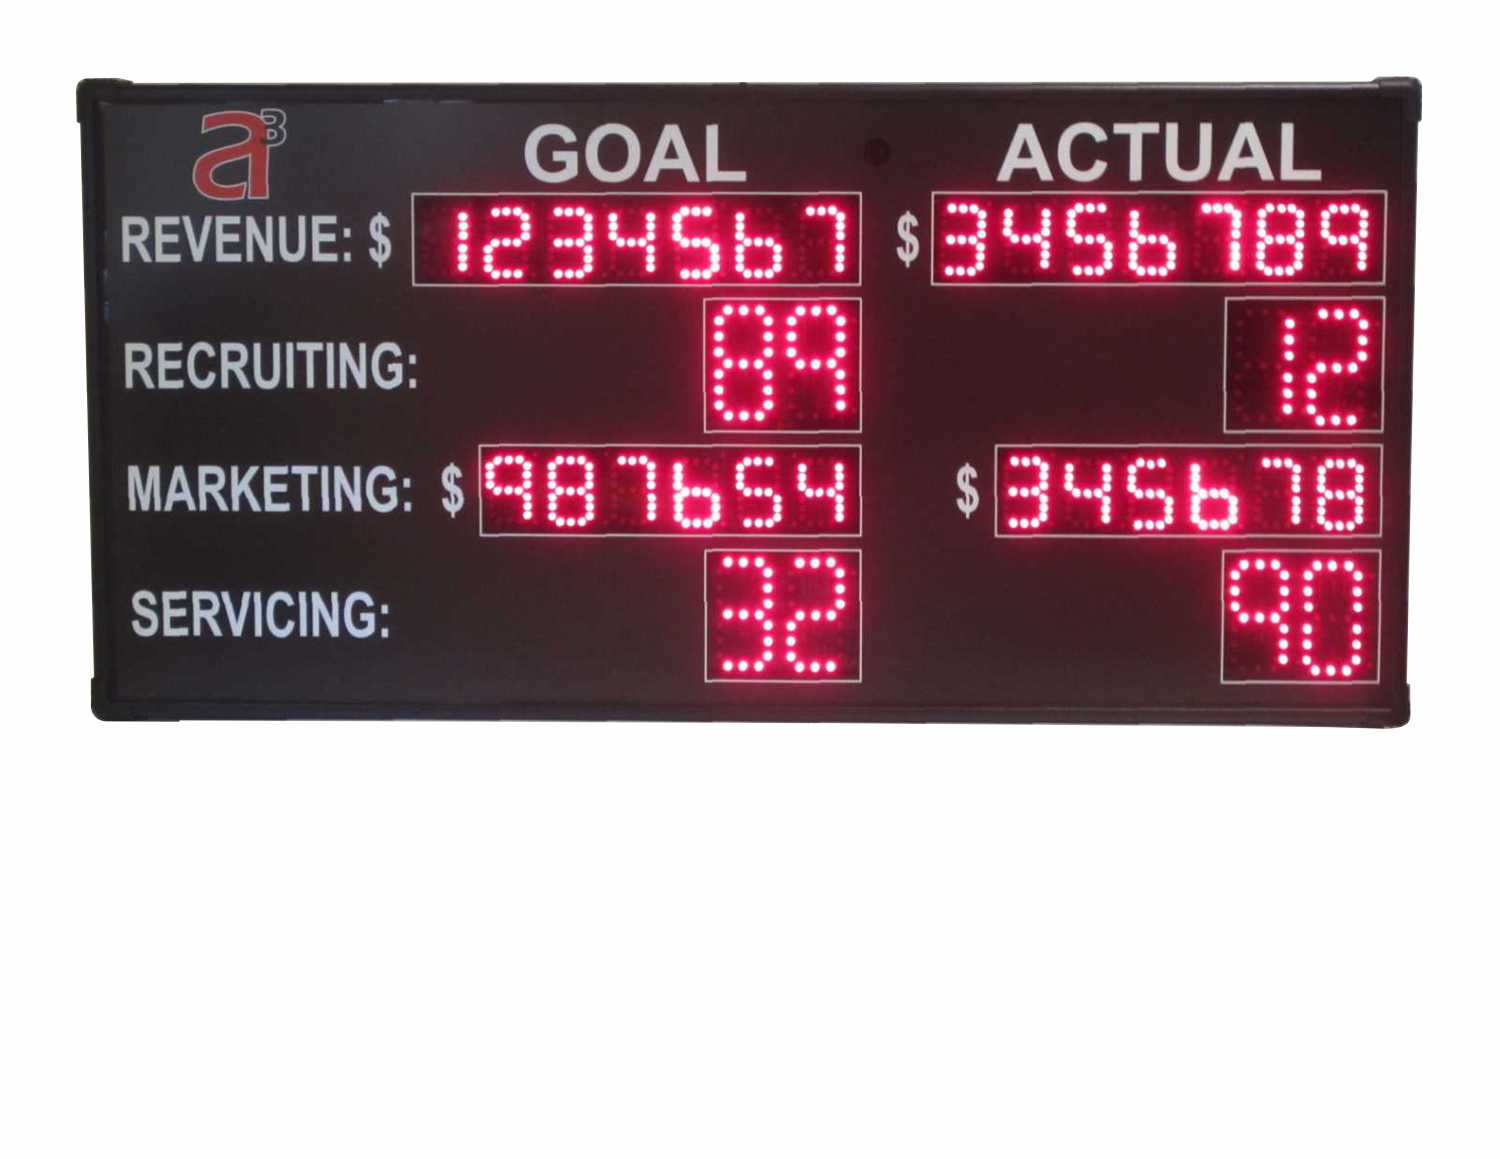 a3 Athletics scoreboard